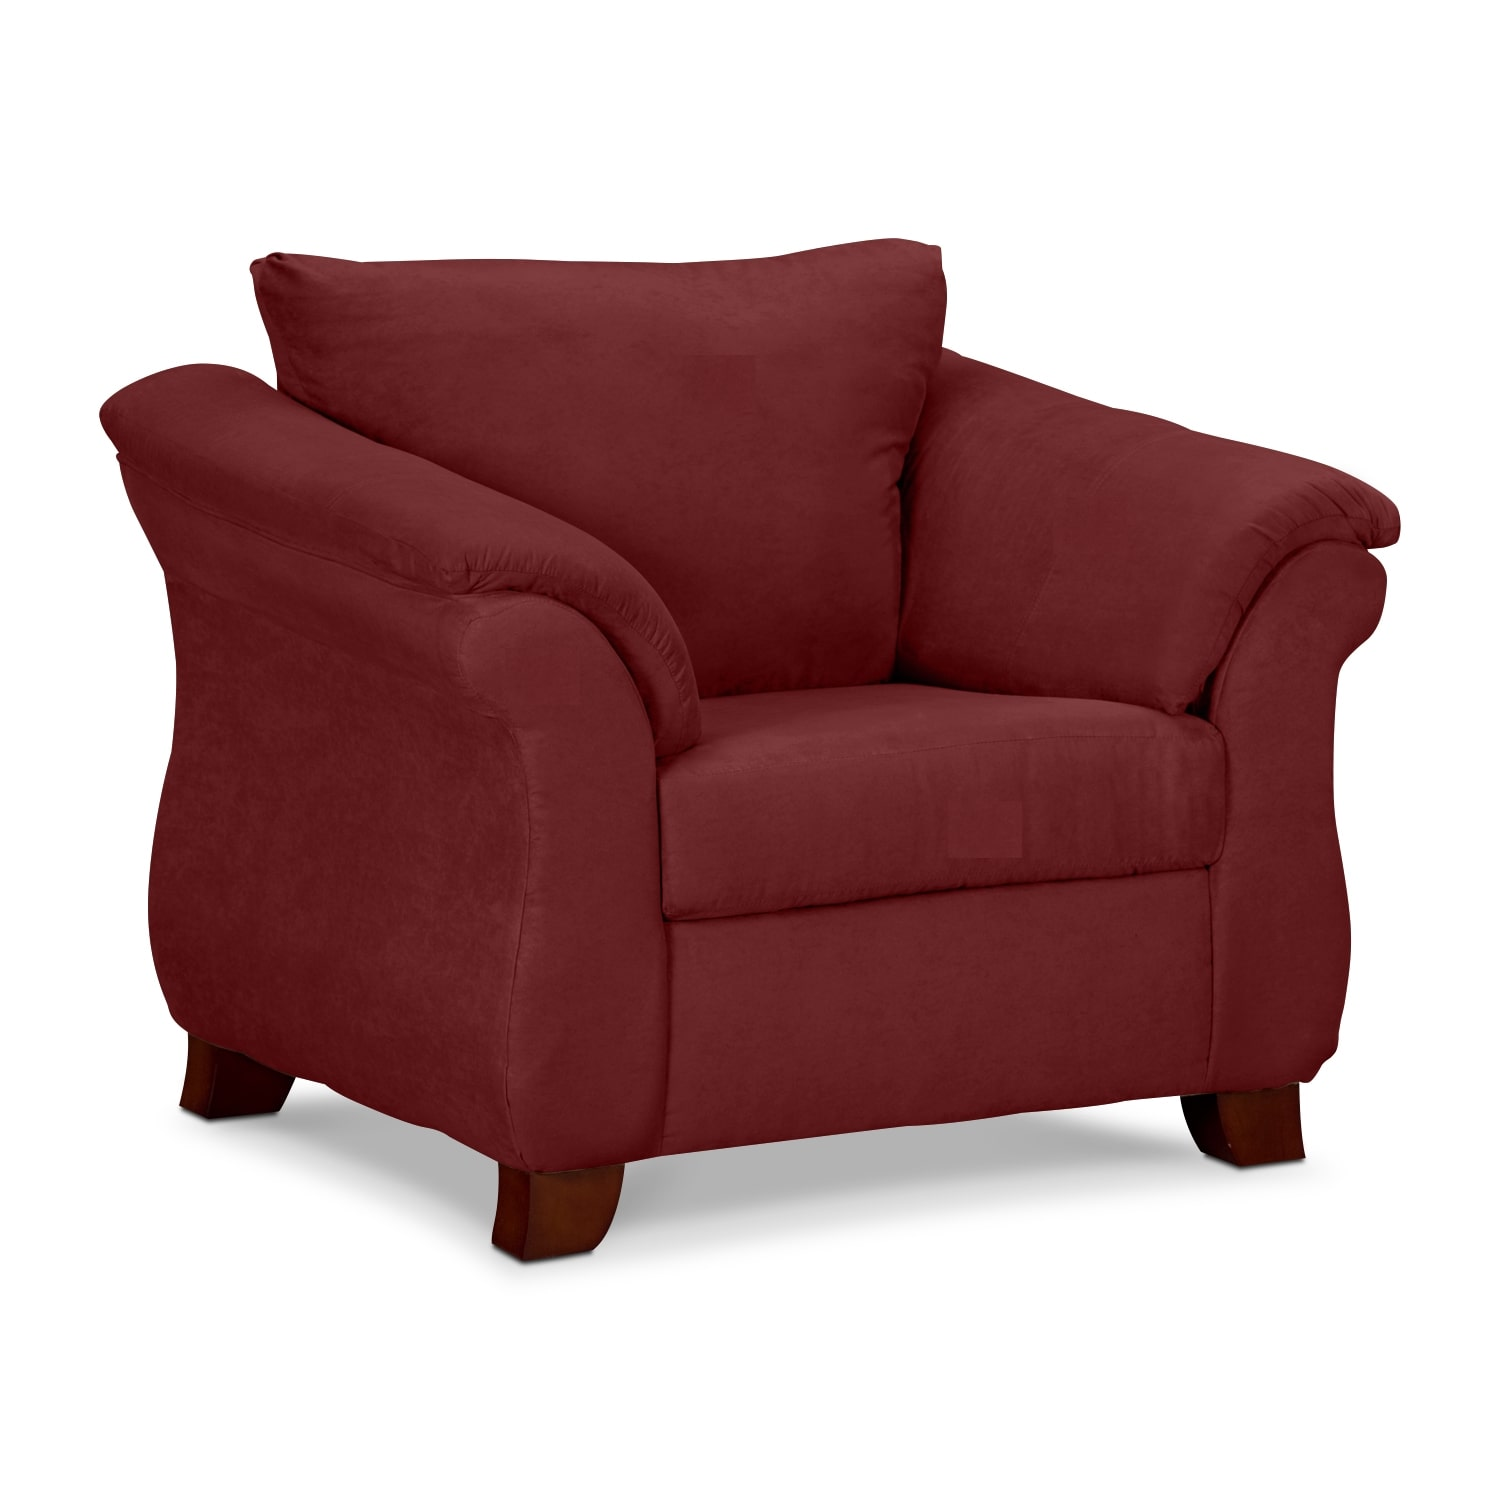 Adrian Chair - Red